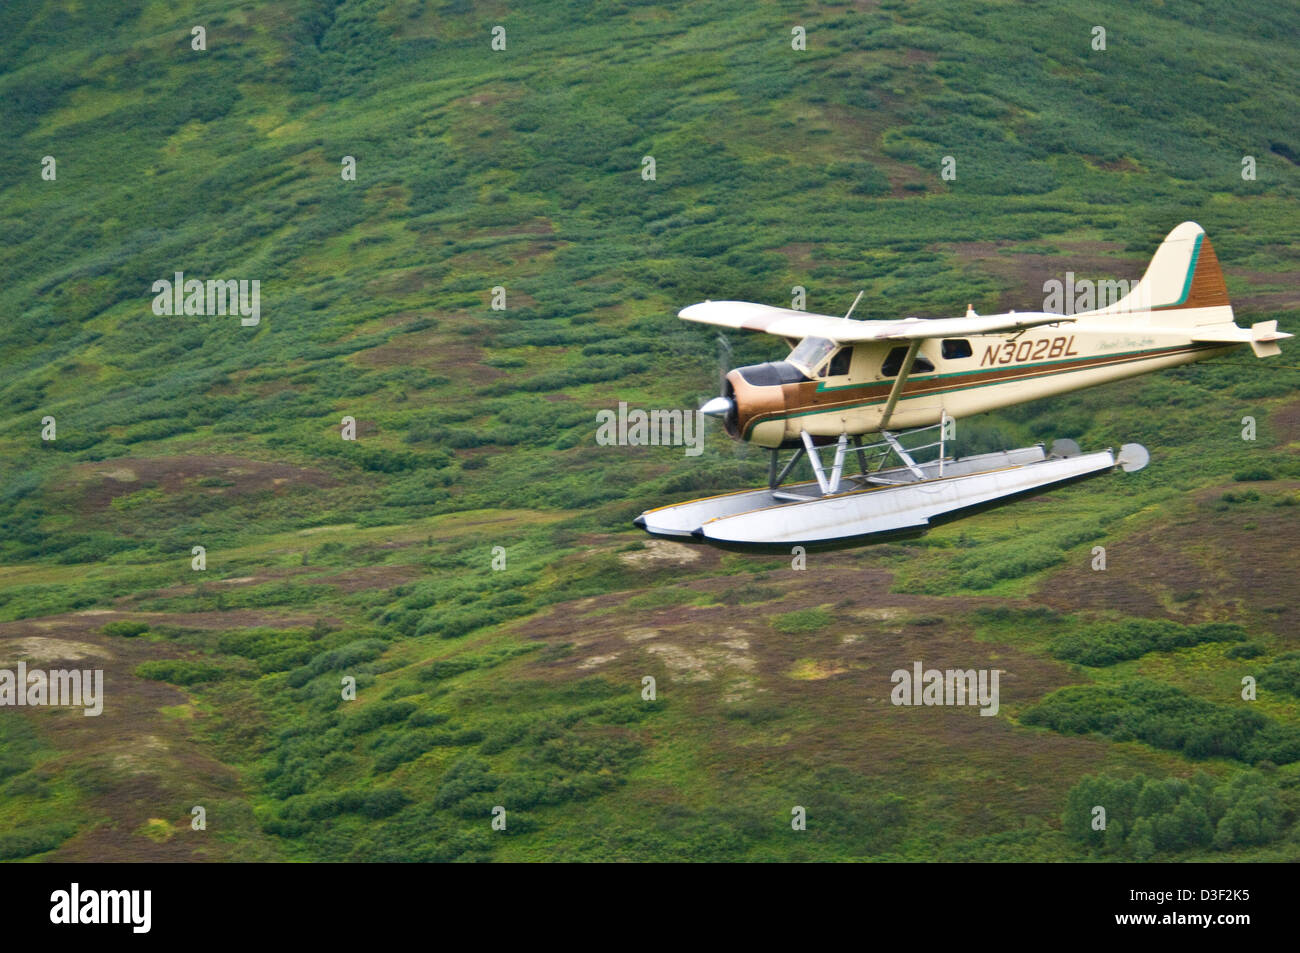 Alaska dillingham county - Dehavilland Beaver Floatplane Flying Over Tundra Near Dillingham Alaska Stock Image